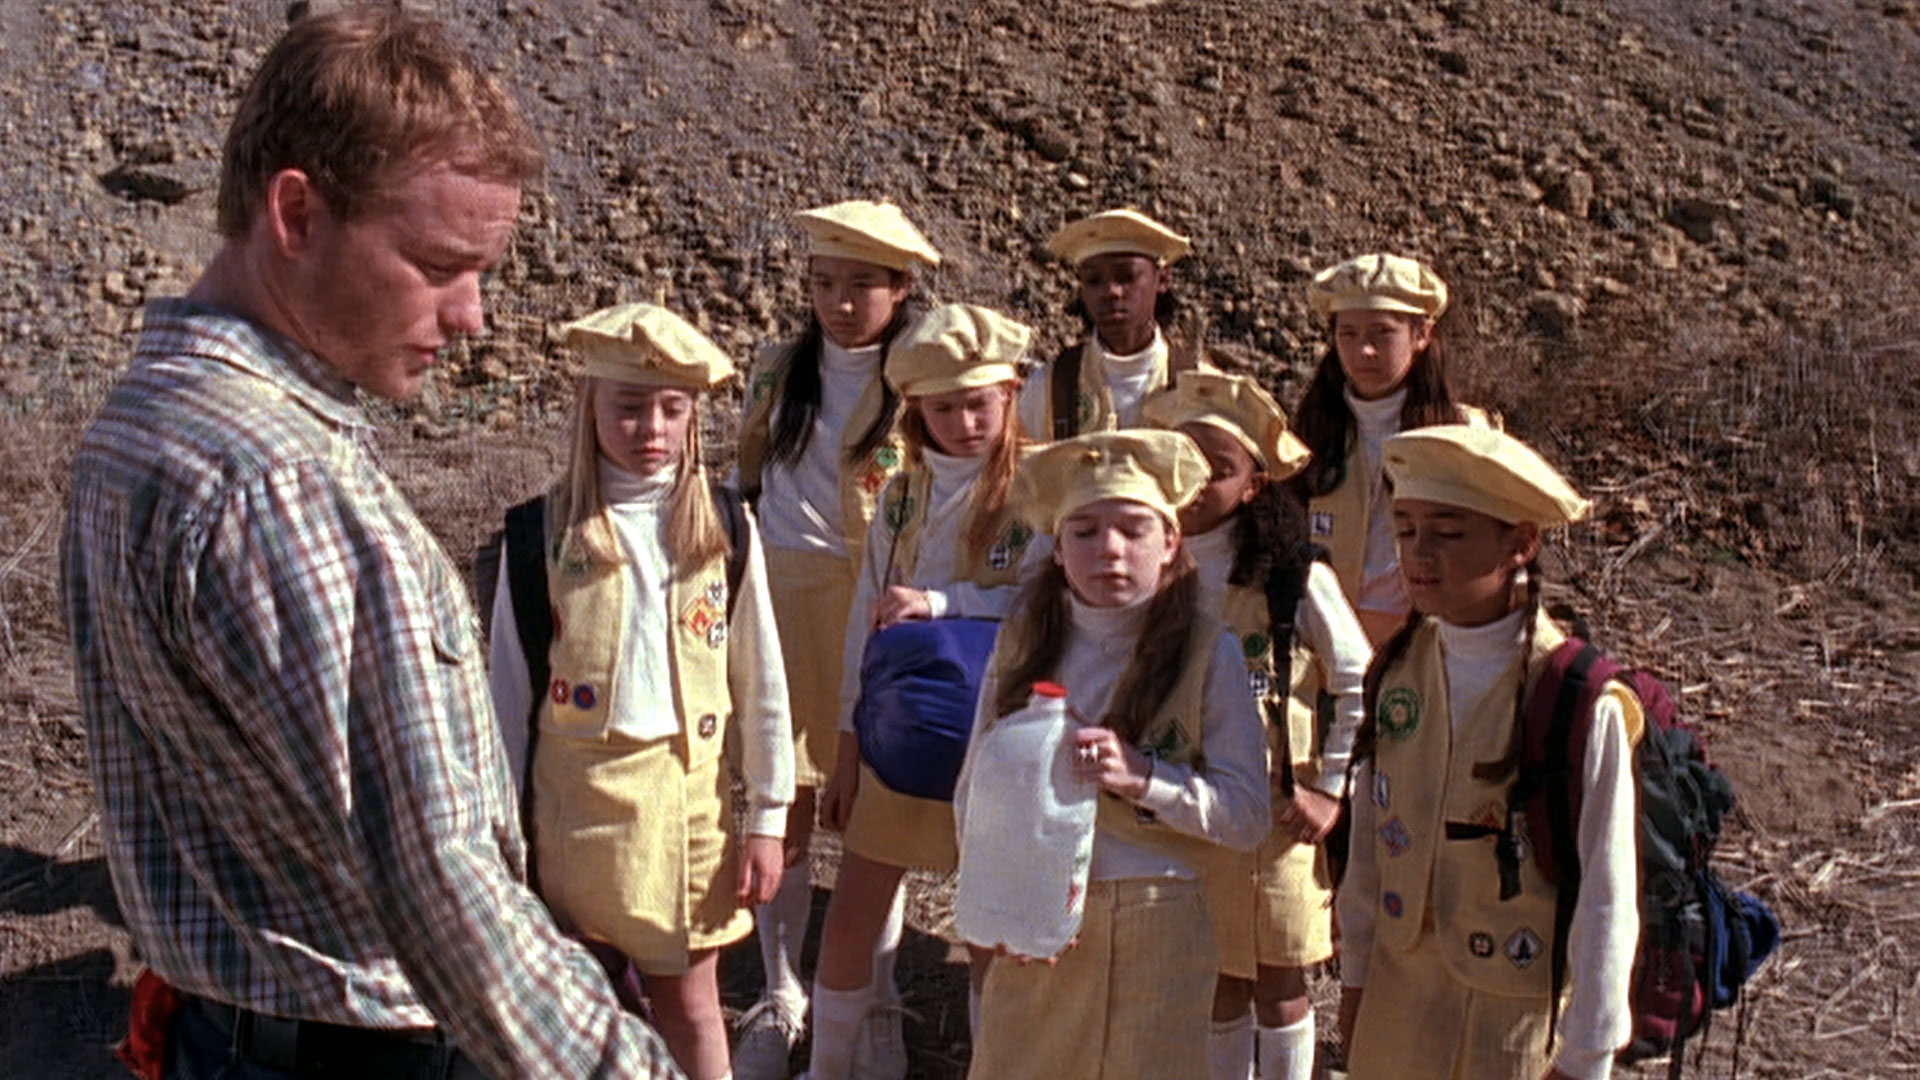 Christopher Masterson (Francis), Hayley Erin (Bouton d'Or #1), Tianna Danielle Kenney (Bouton d'Or #2), Alyssa Monka (Bouton d'Or #3), Montana Tsai (Bouton d'Or #4), Gracie Markland (Bouton d'Or #5) et Chanel Gaines (Bouton d'Or #6) dans